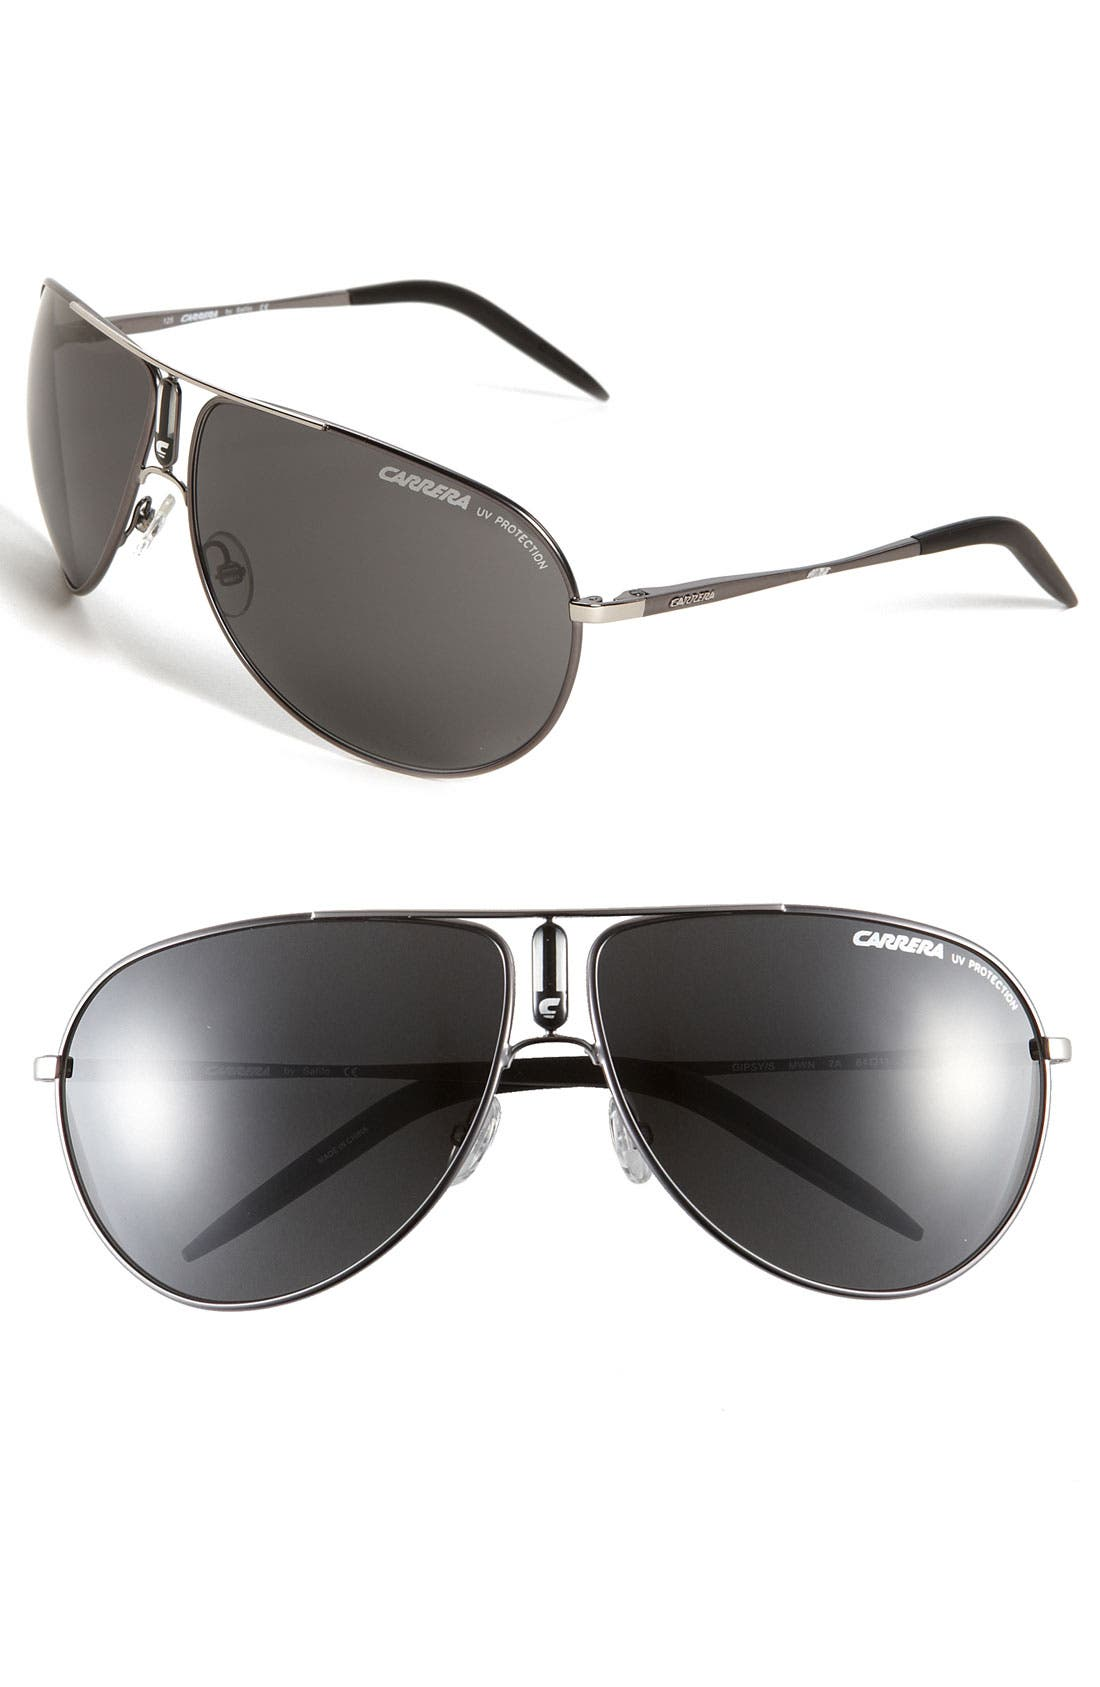 Alternate Image 1 Selected - Carrera Eyewear 'Gipsy' 64mm Aviator Sunglasses